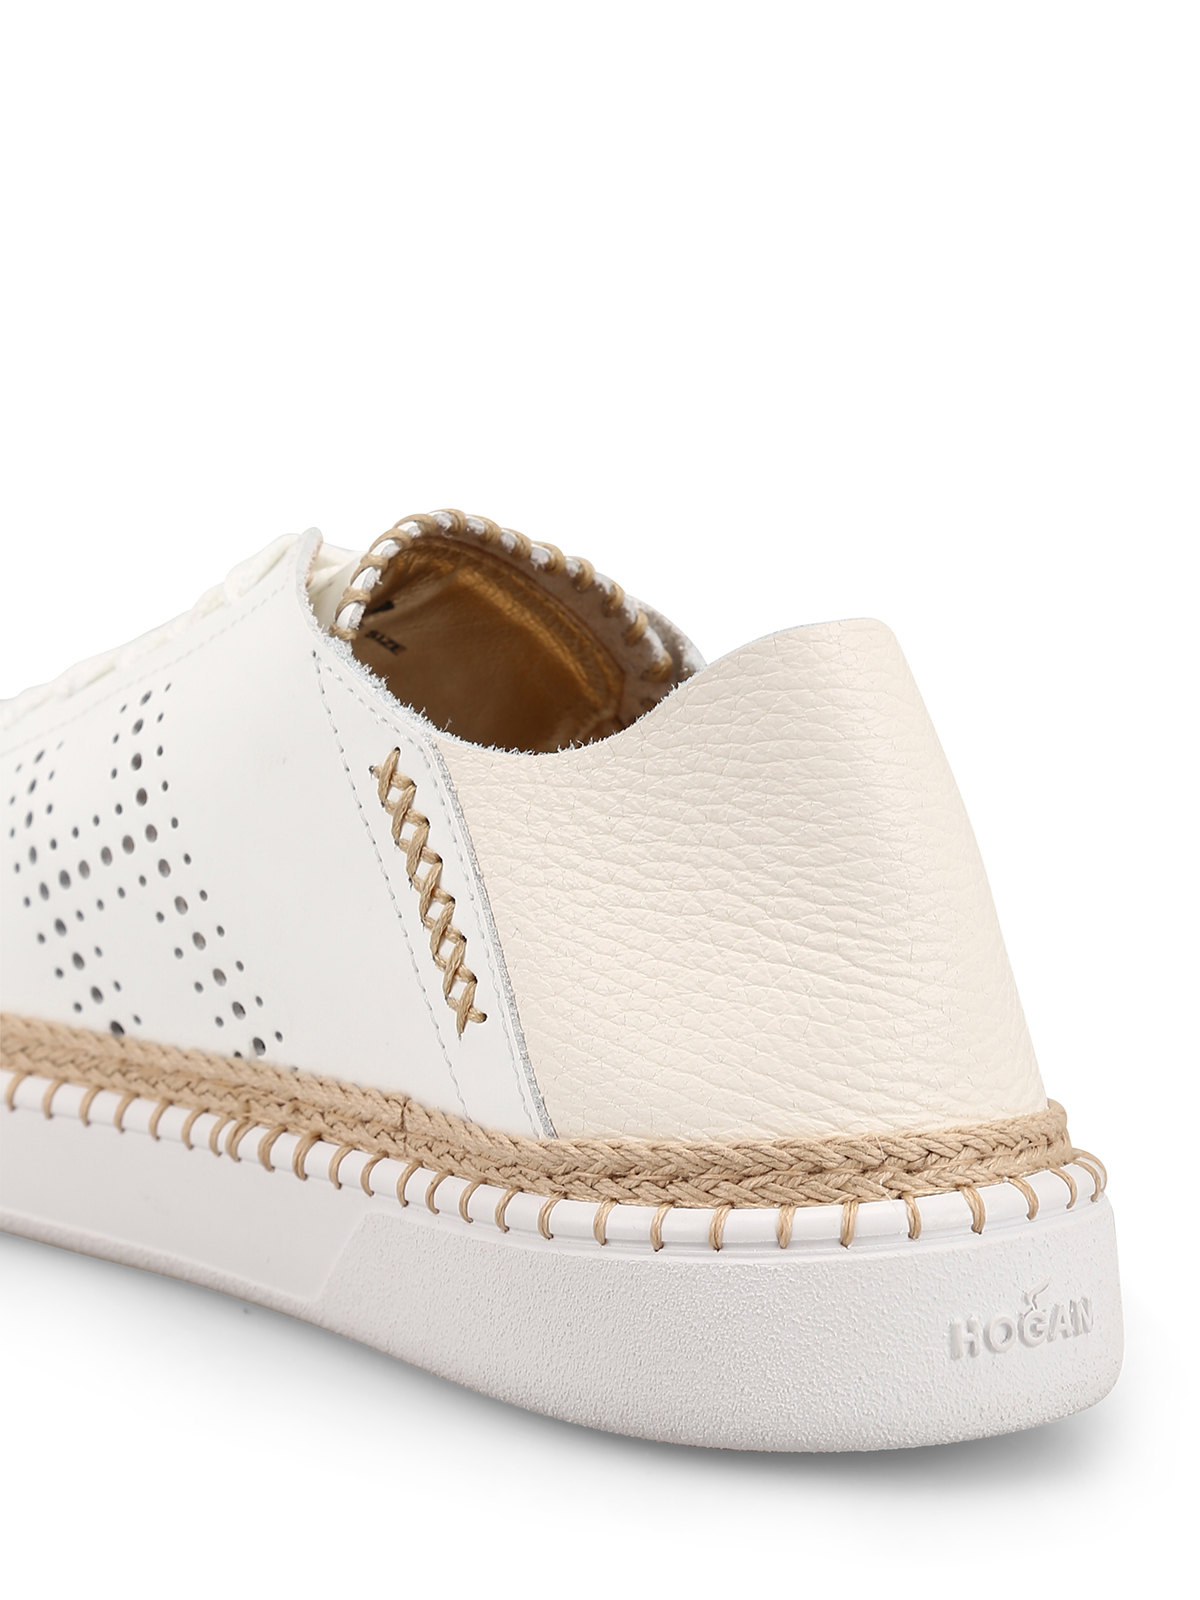 Trainers Hogan - Leather sneakers with espadrilles details ...